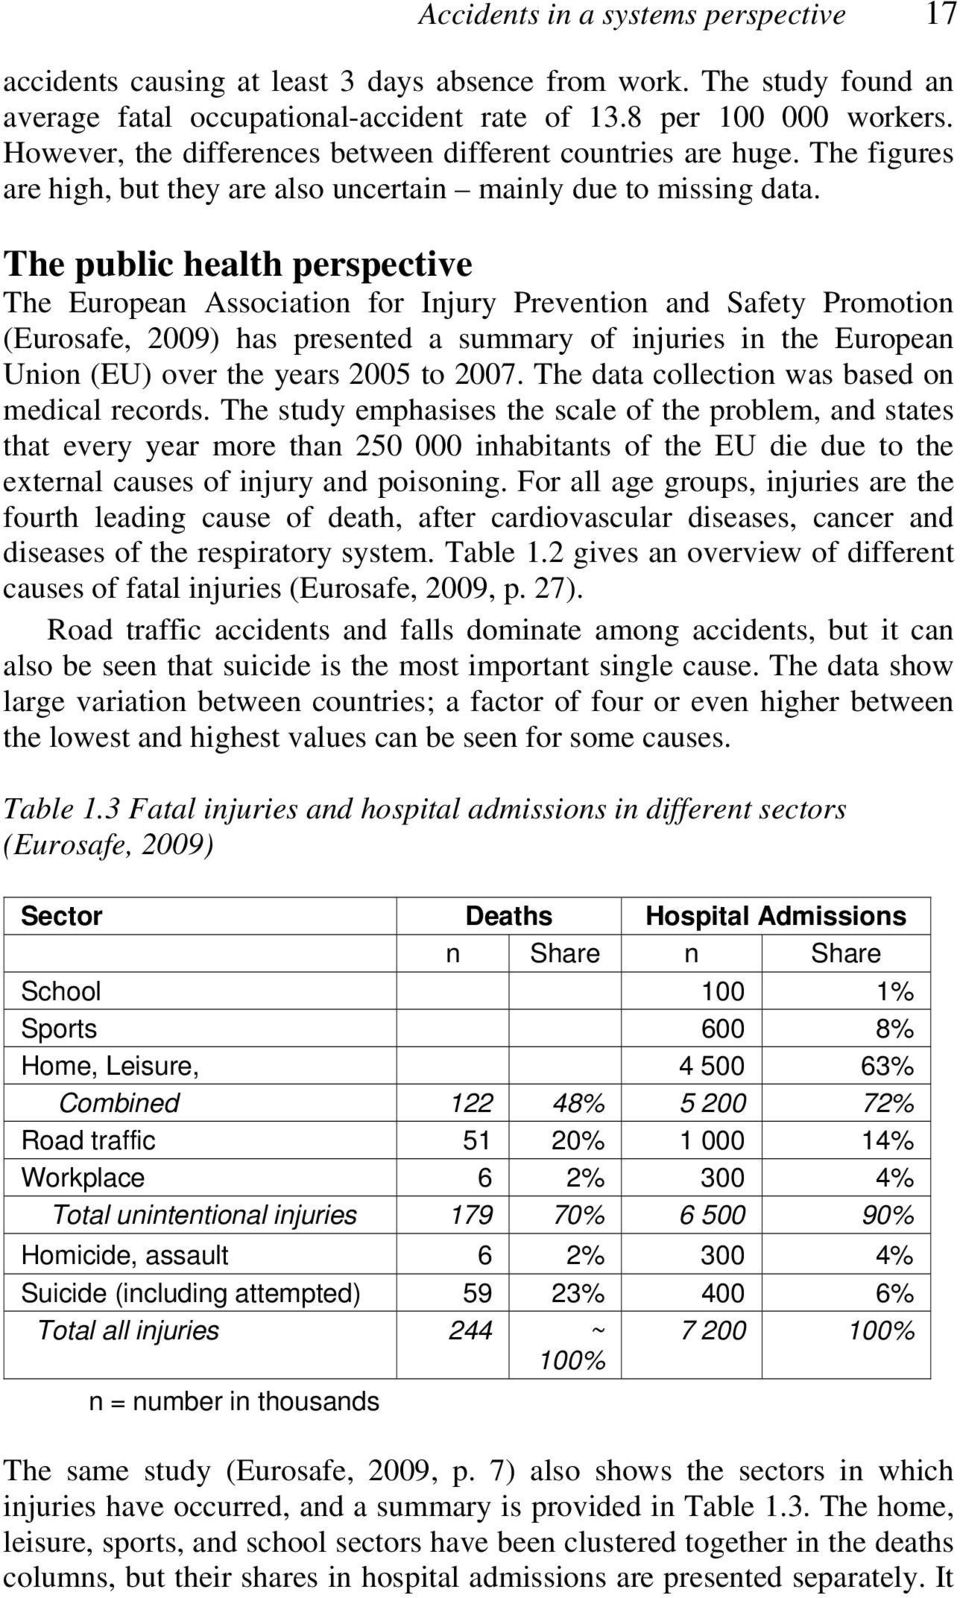 The public health perspective The European Association for Injury Prevention and Safety Promotion (Eurosafe, 2009) has presented a summary of injuries in the European Union (EU) over the years 2005